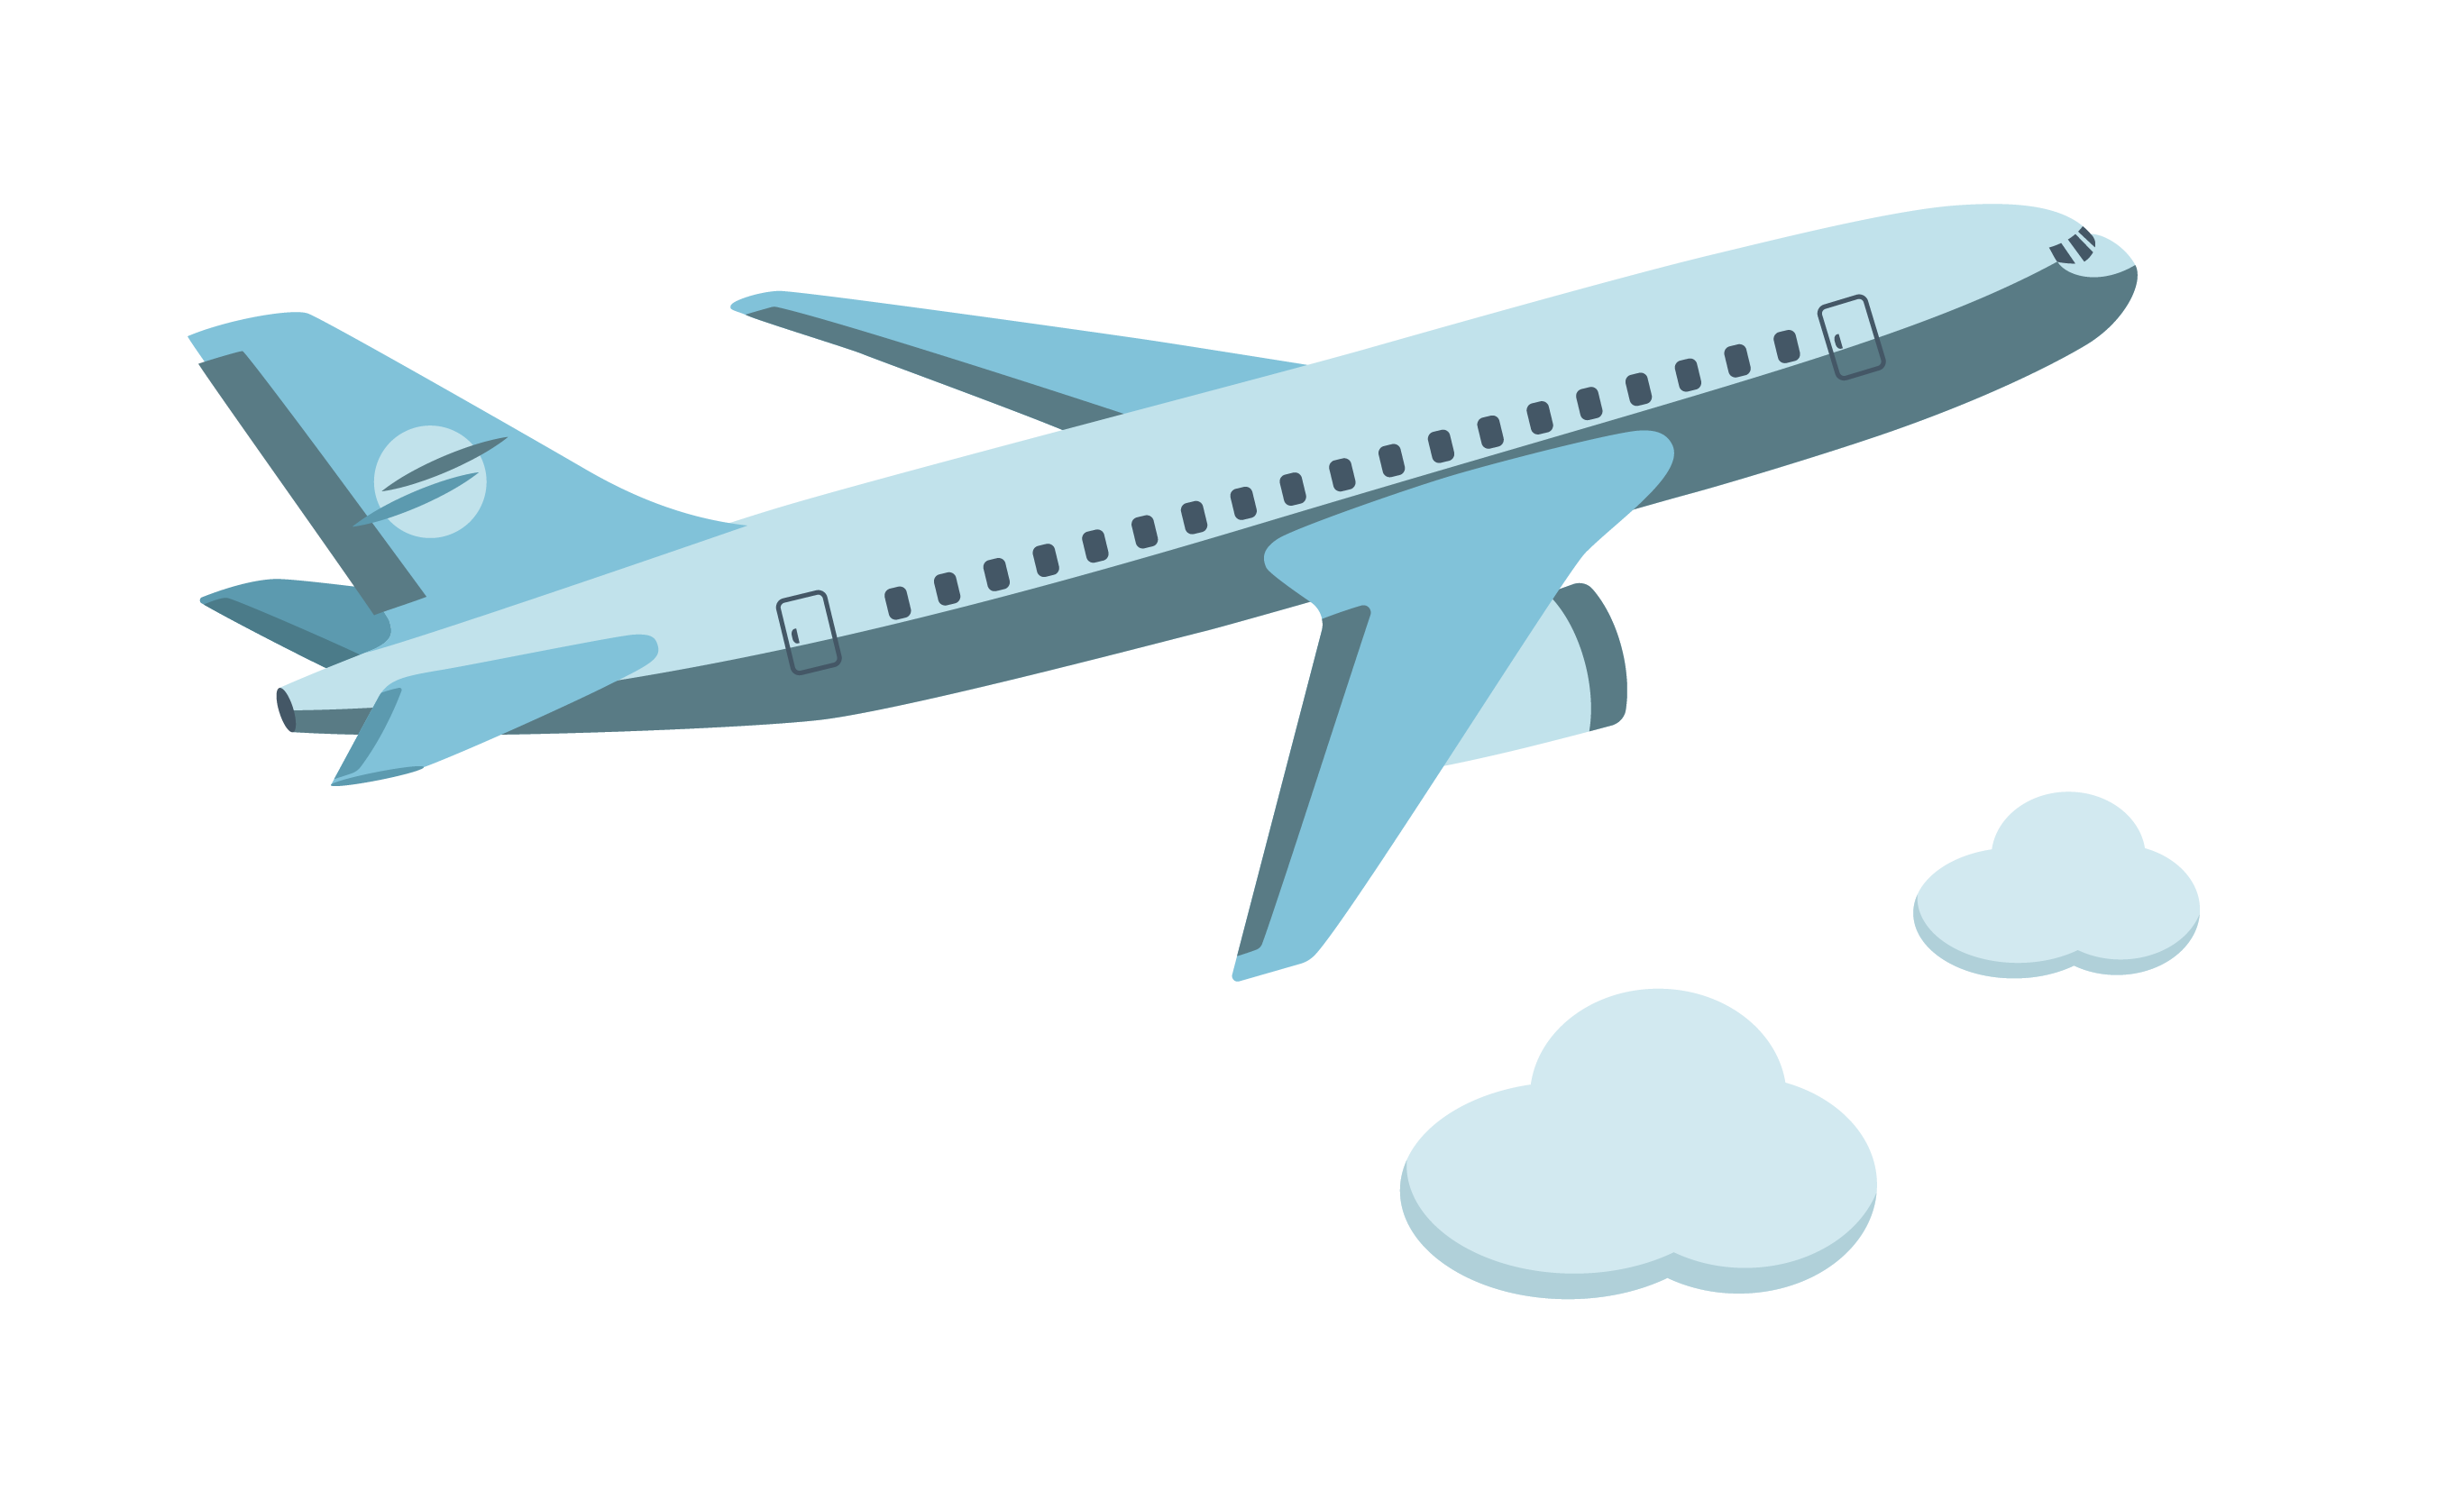 clipart freeuse stock Airplane aircraft cartoon flying. Vector aviation icon